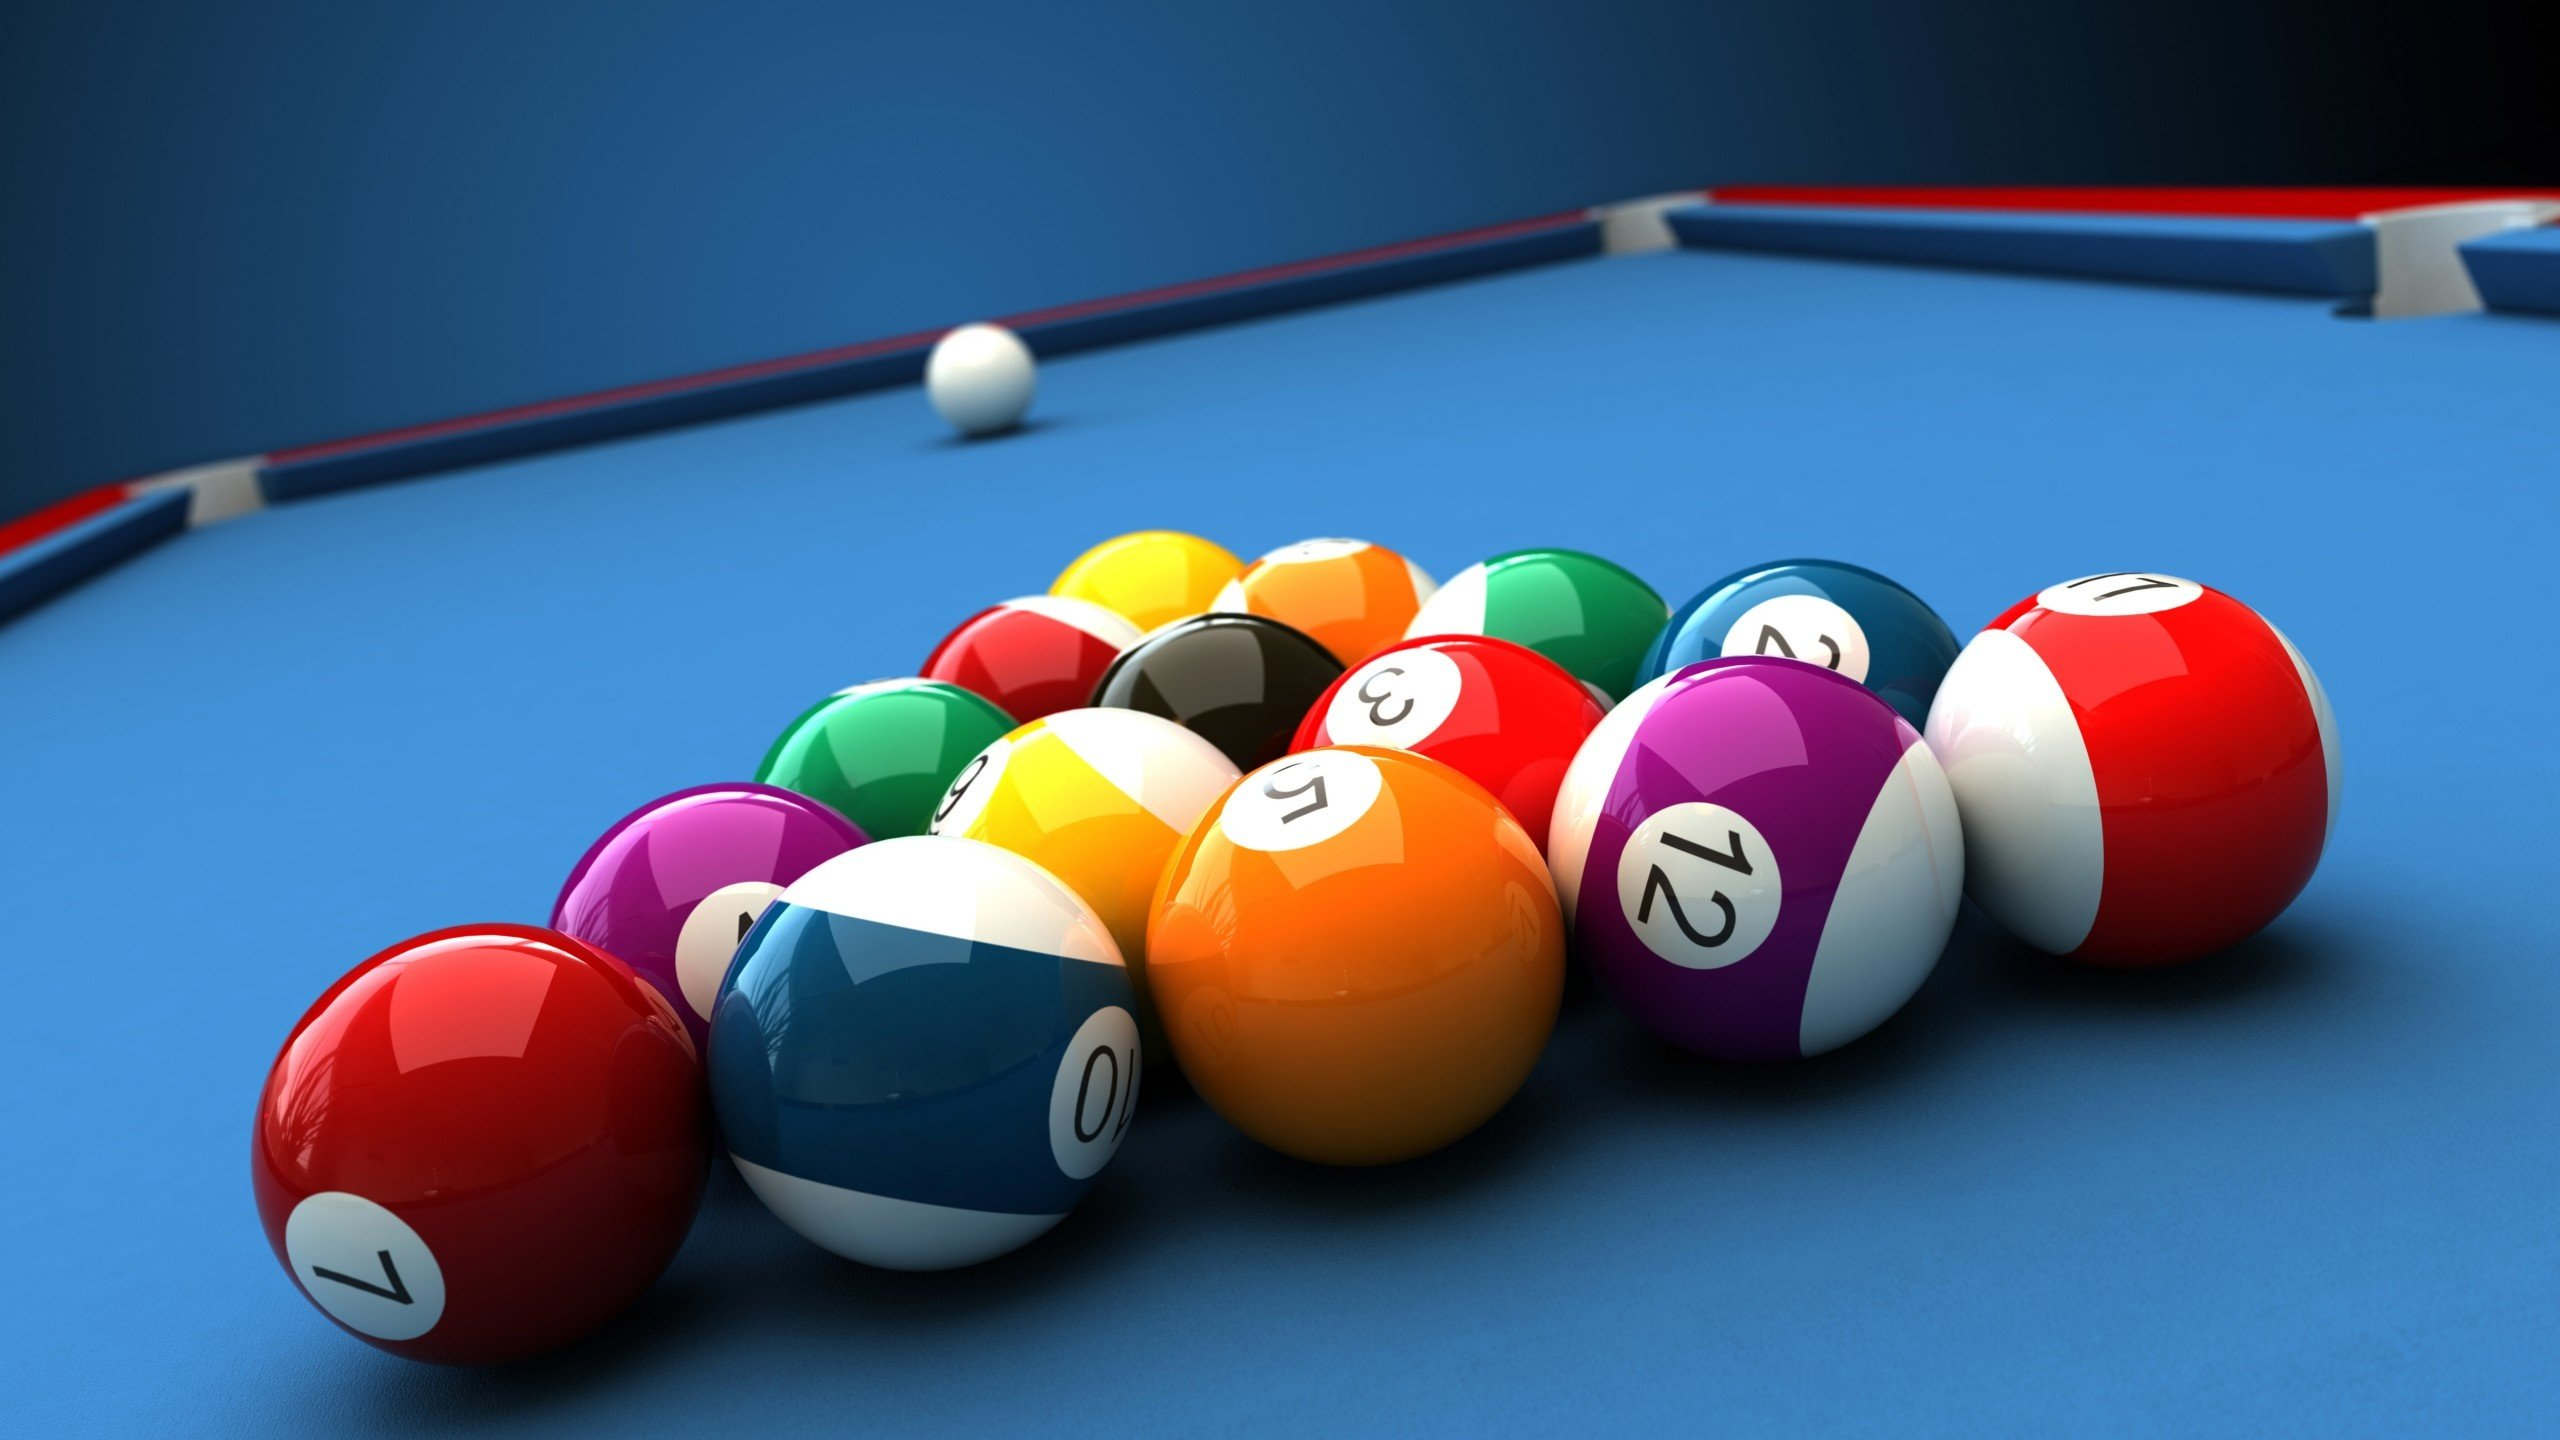 Download 3d 8 Ball Pool